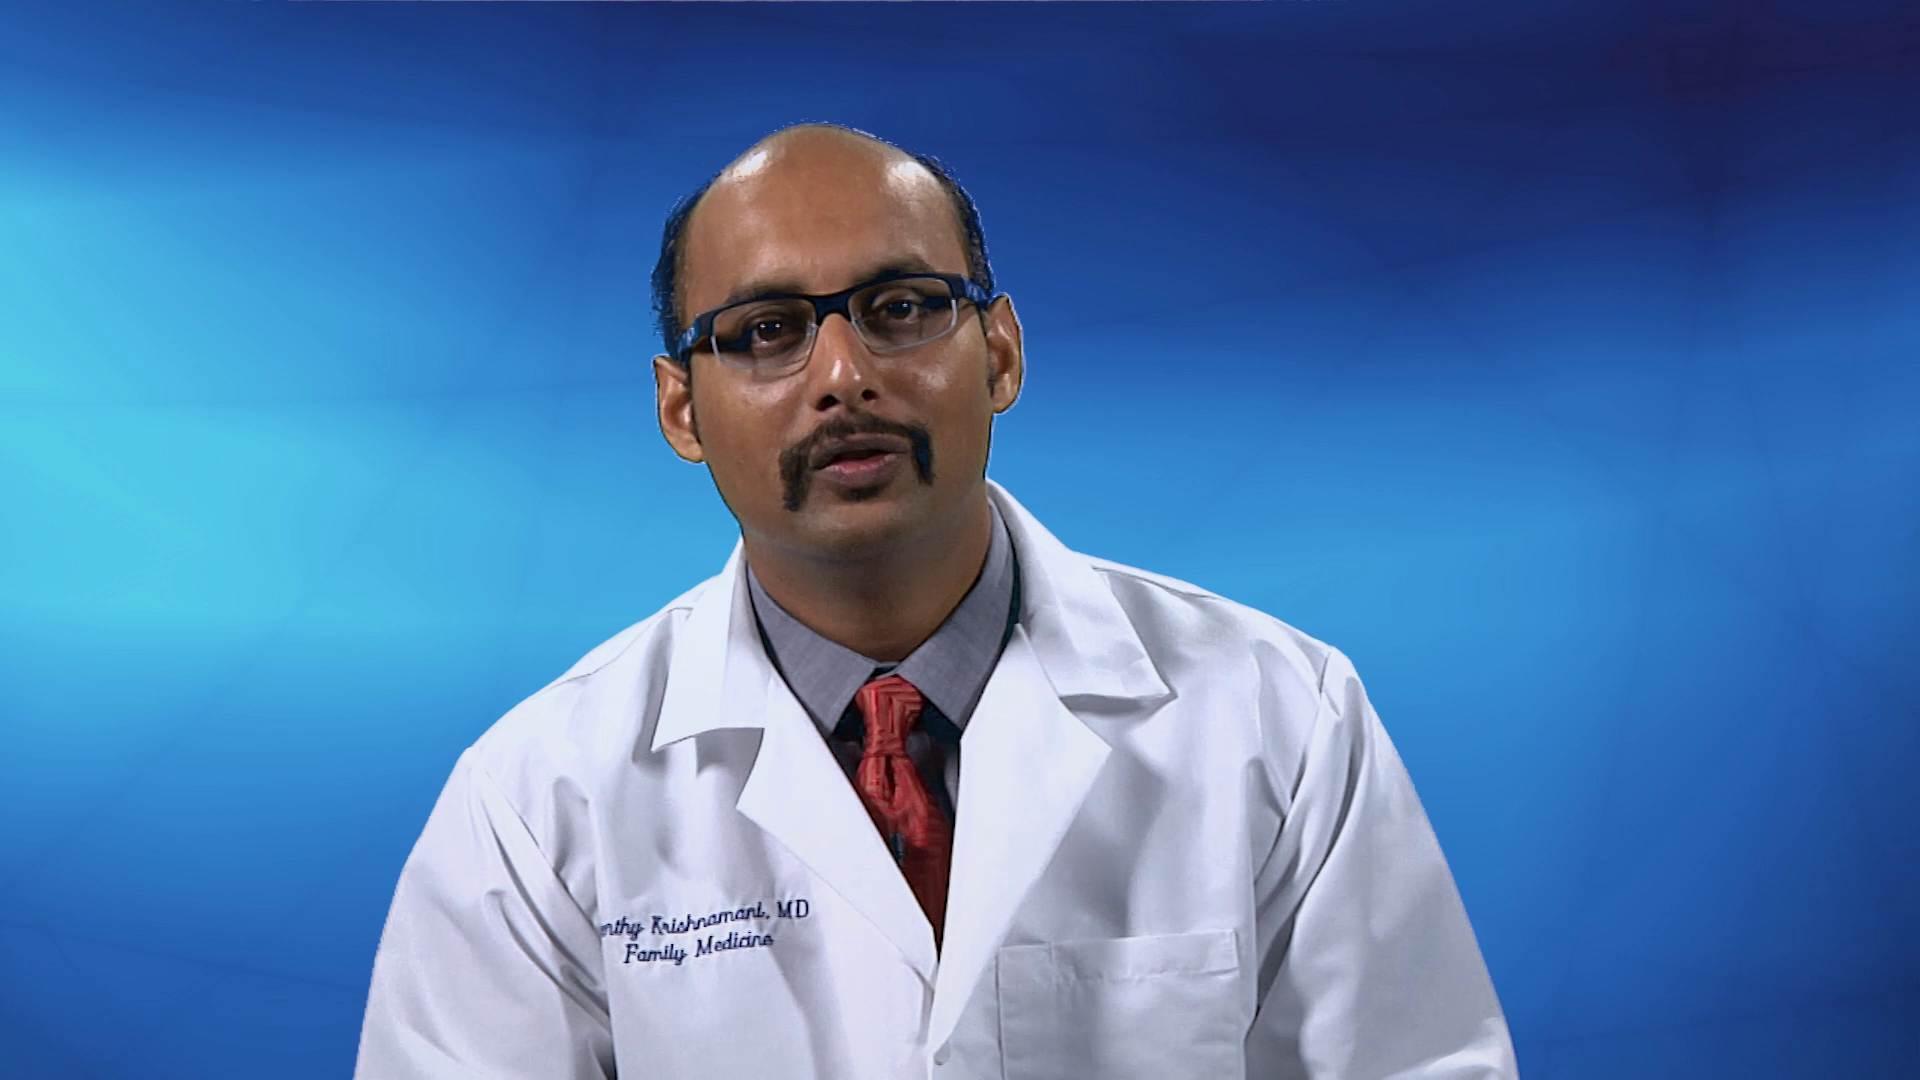 Dr. Krishnamani talks about his practice